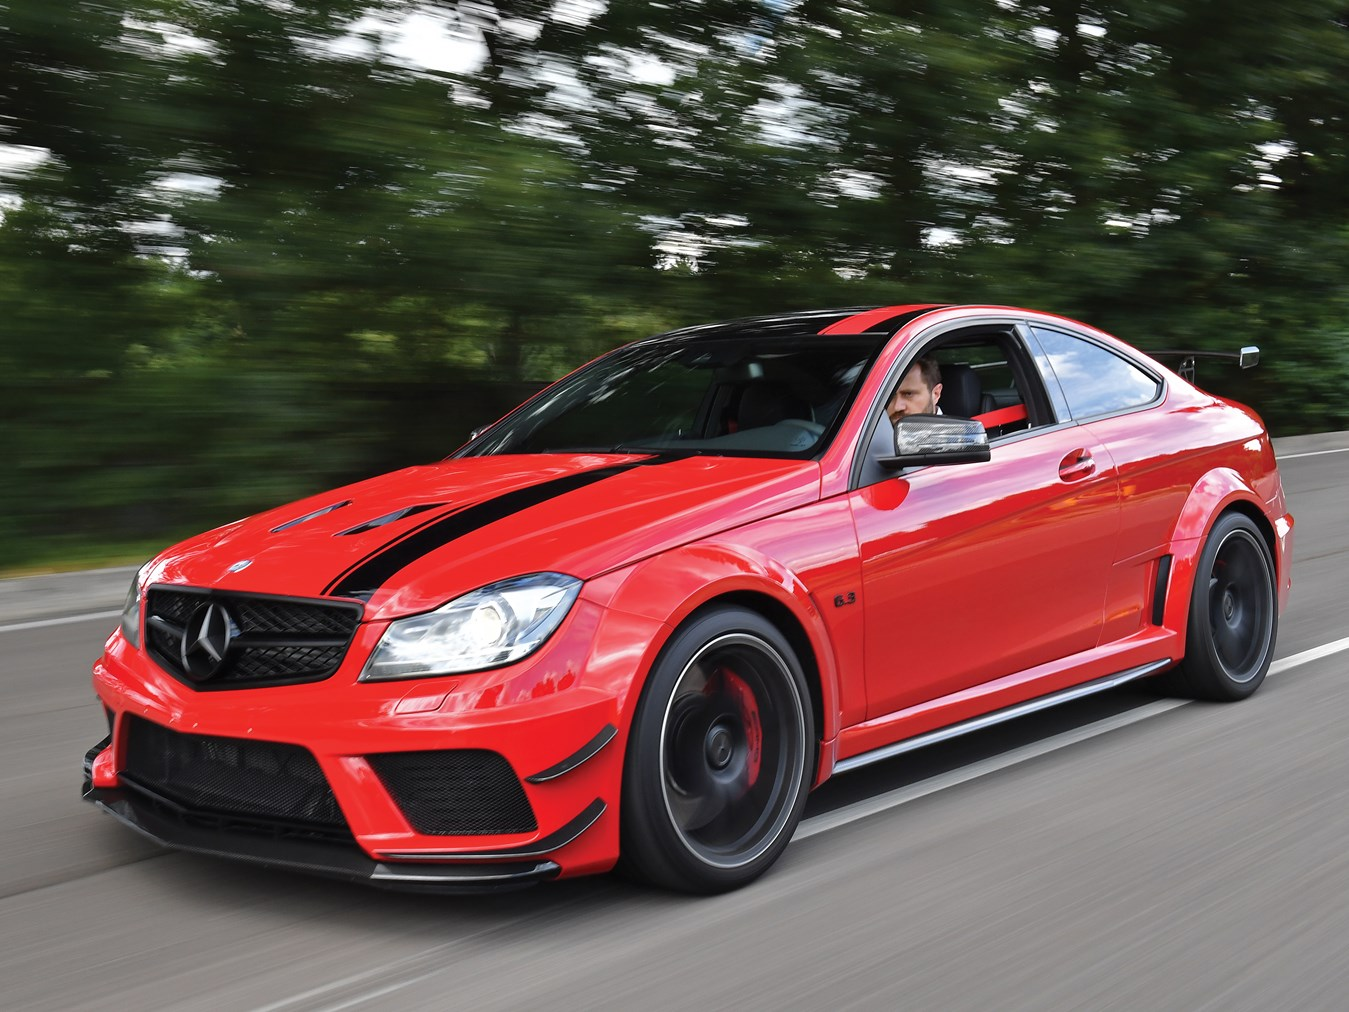 C63 Amg Smokes An Audi R8 From The Stop Light Autoevolution